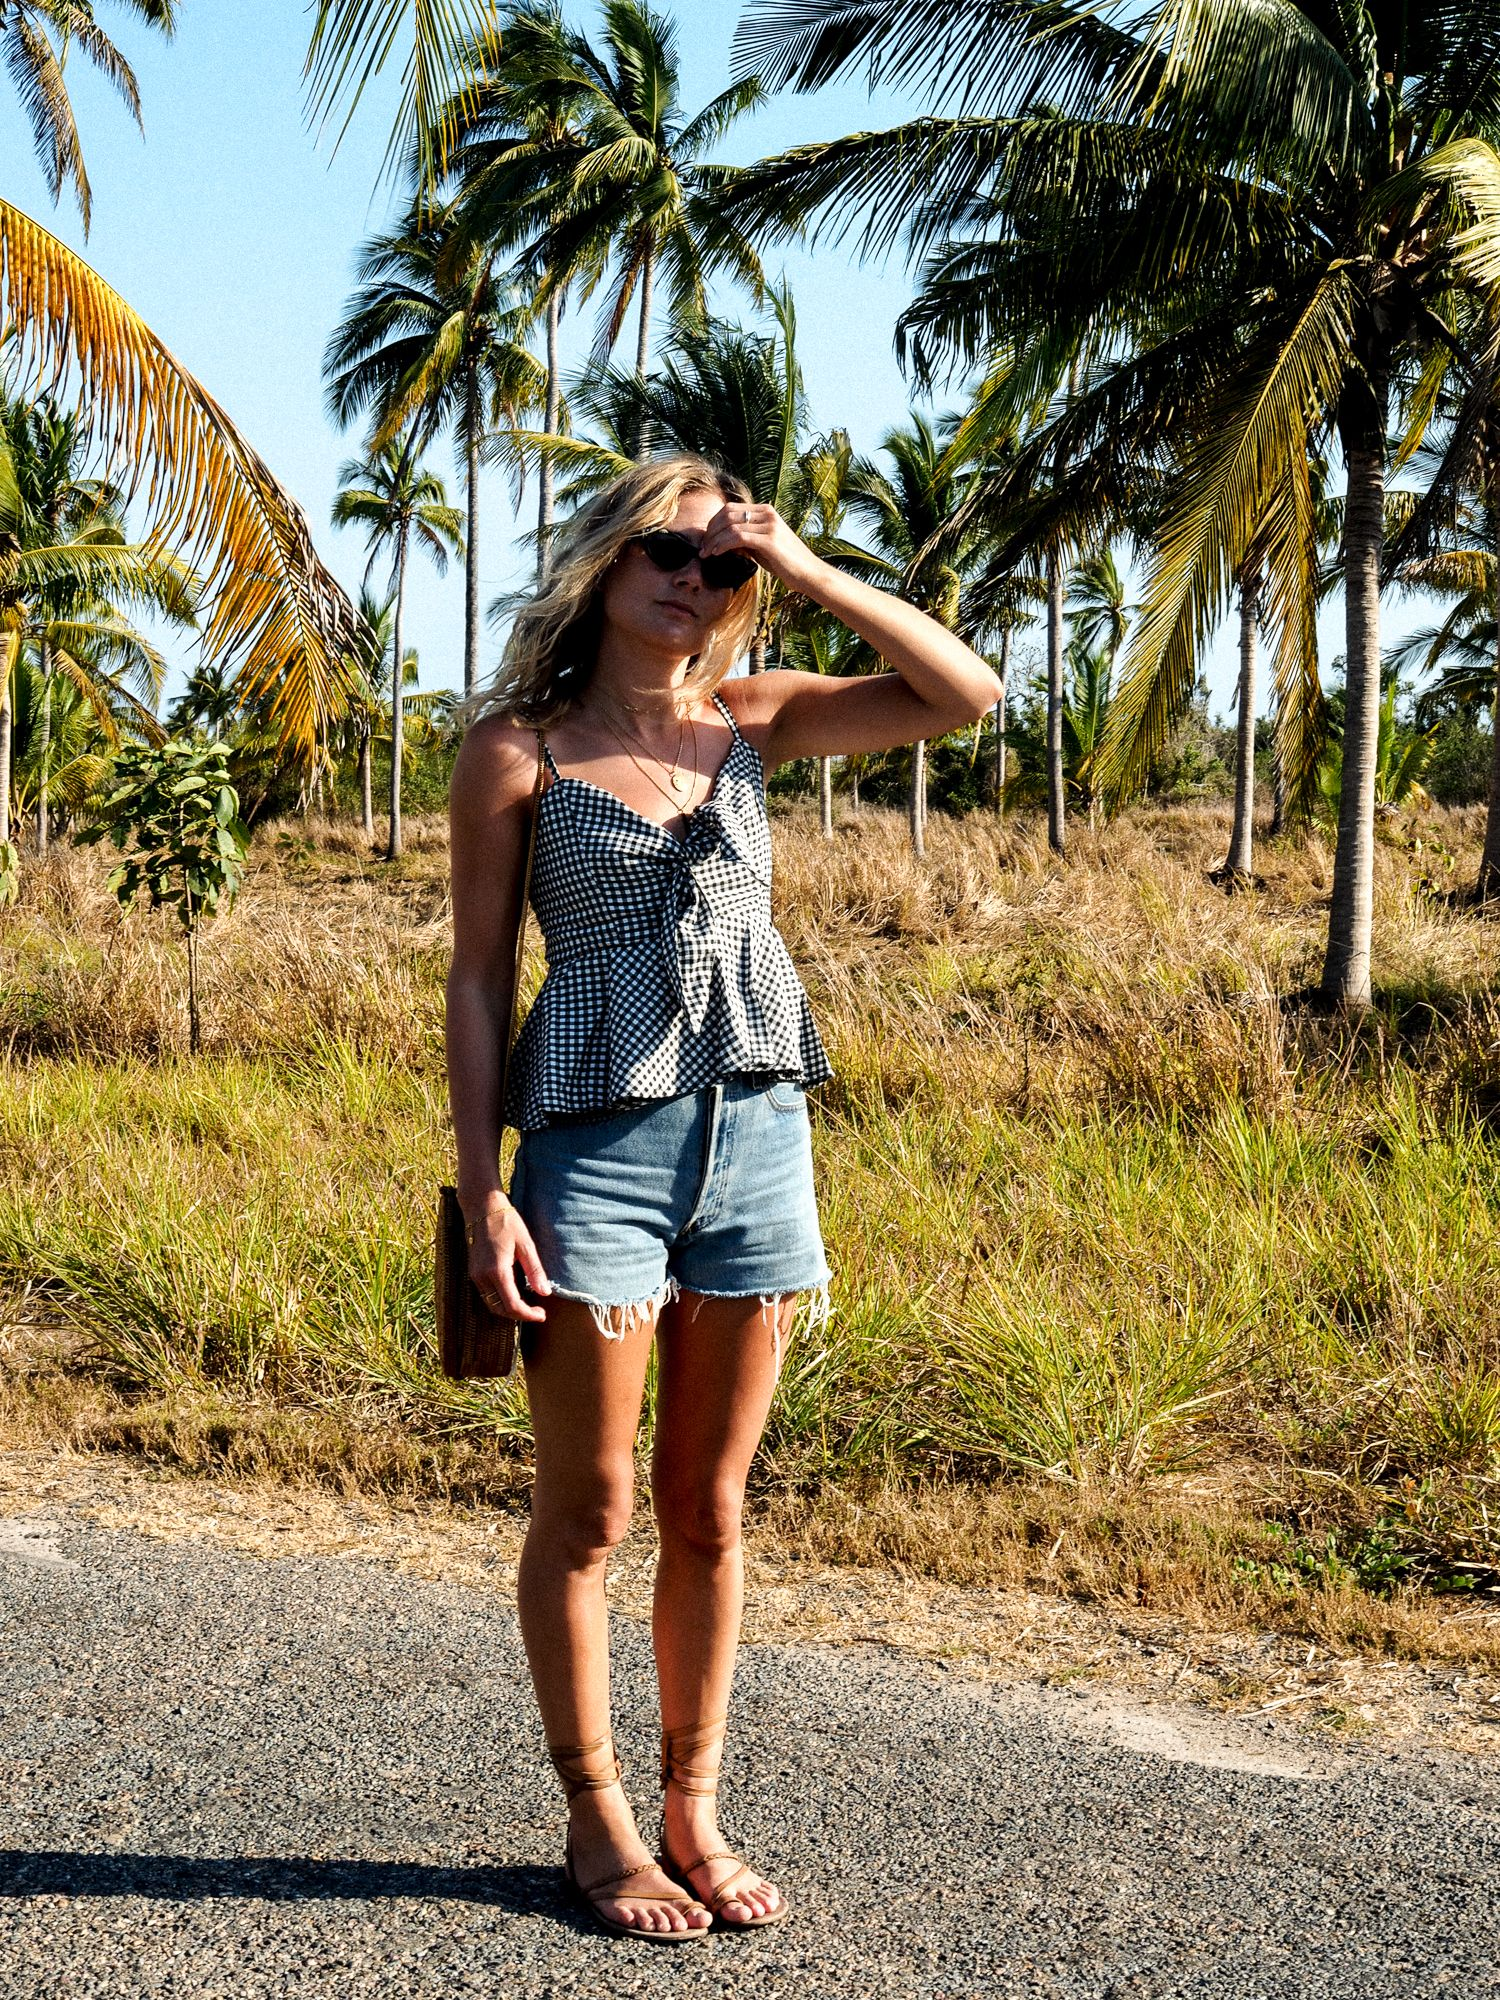 Vacation Outfit: jumper and palm trees | .Highheels